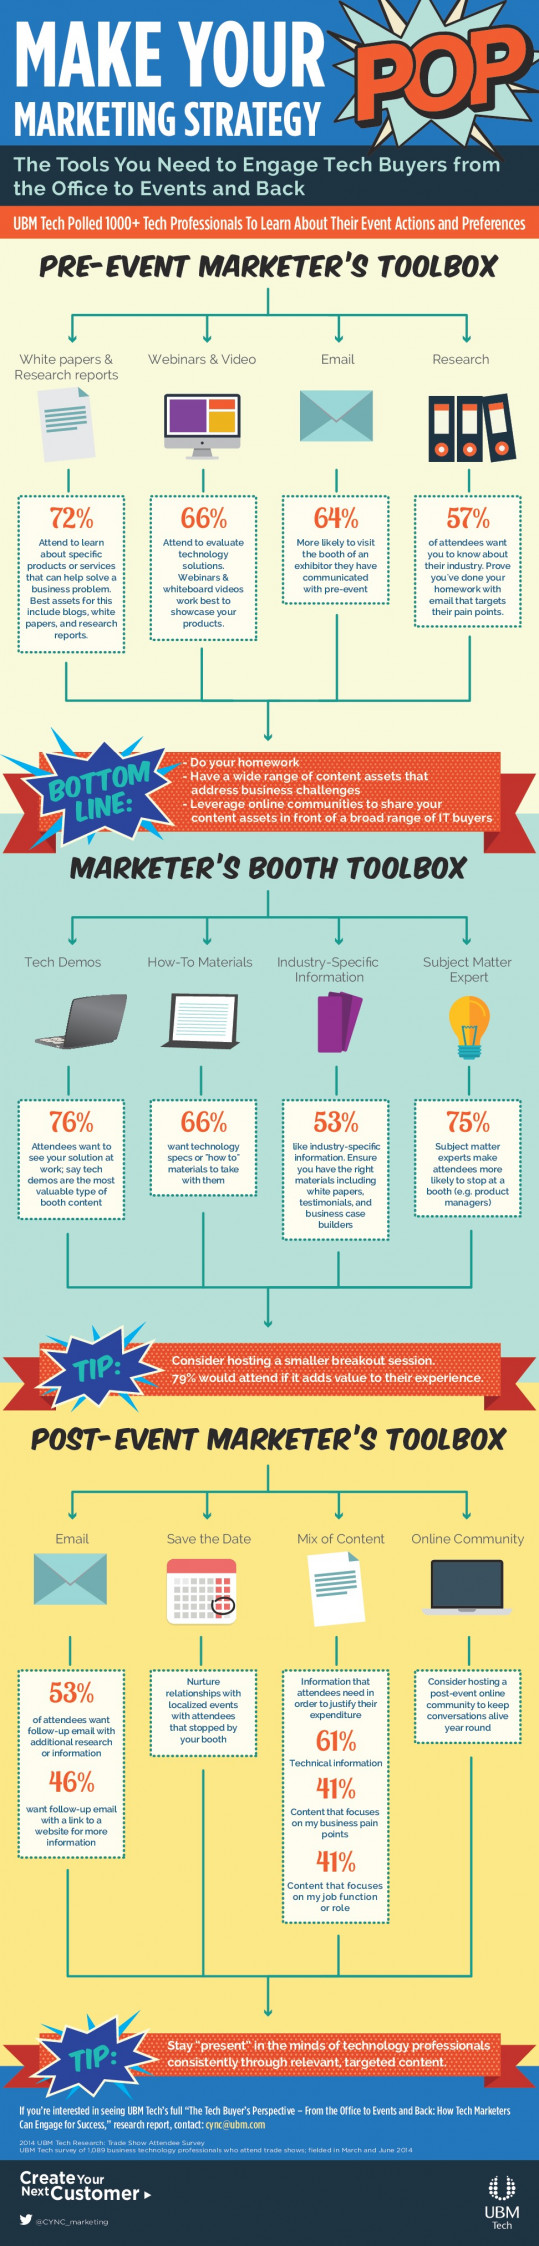 Infographic: Make Your Marketing Strategy POP